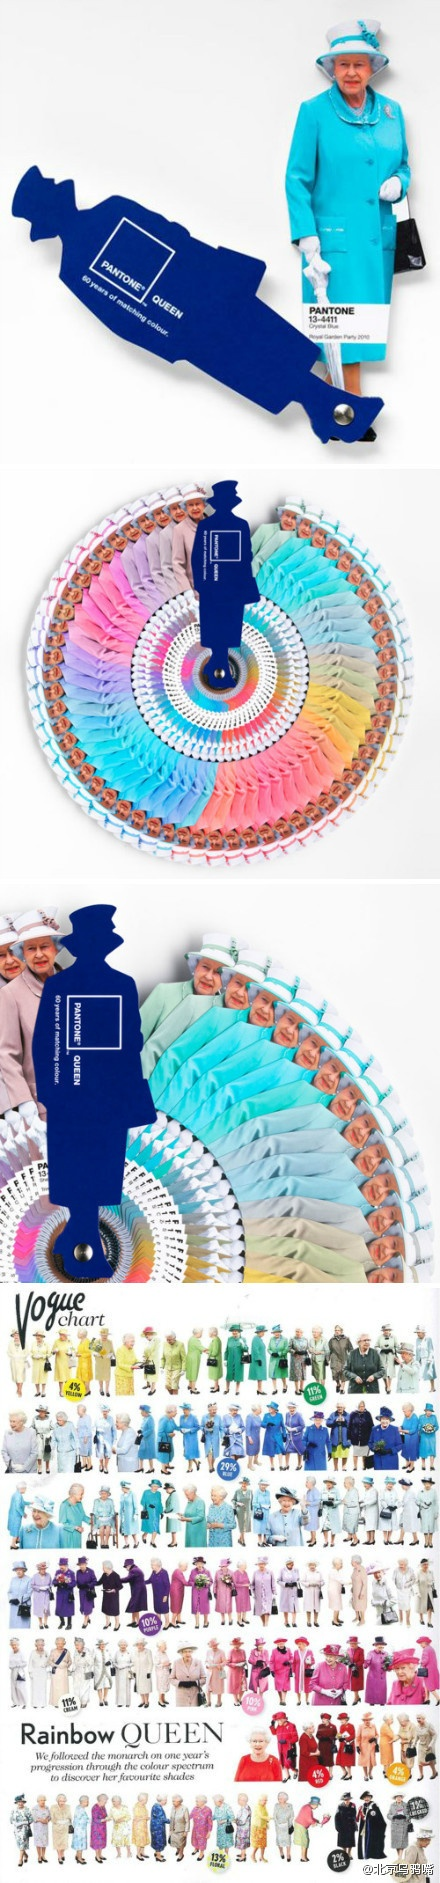 Pantone chart. The colourful Queen